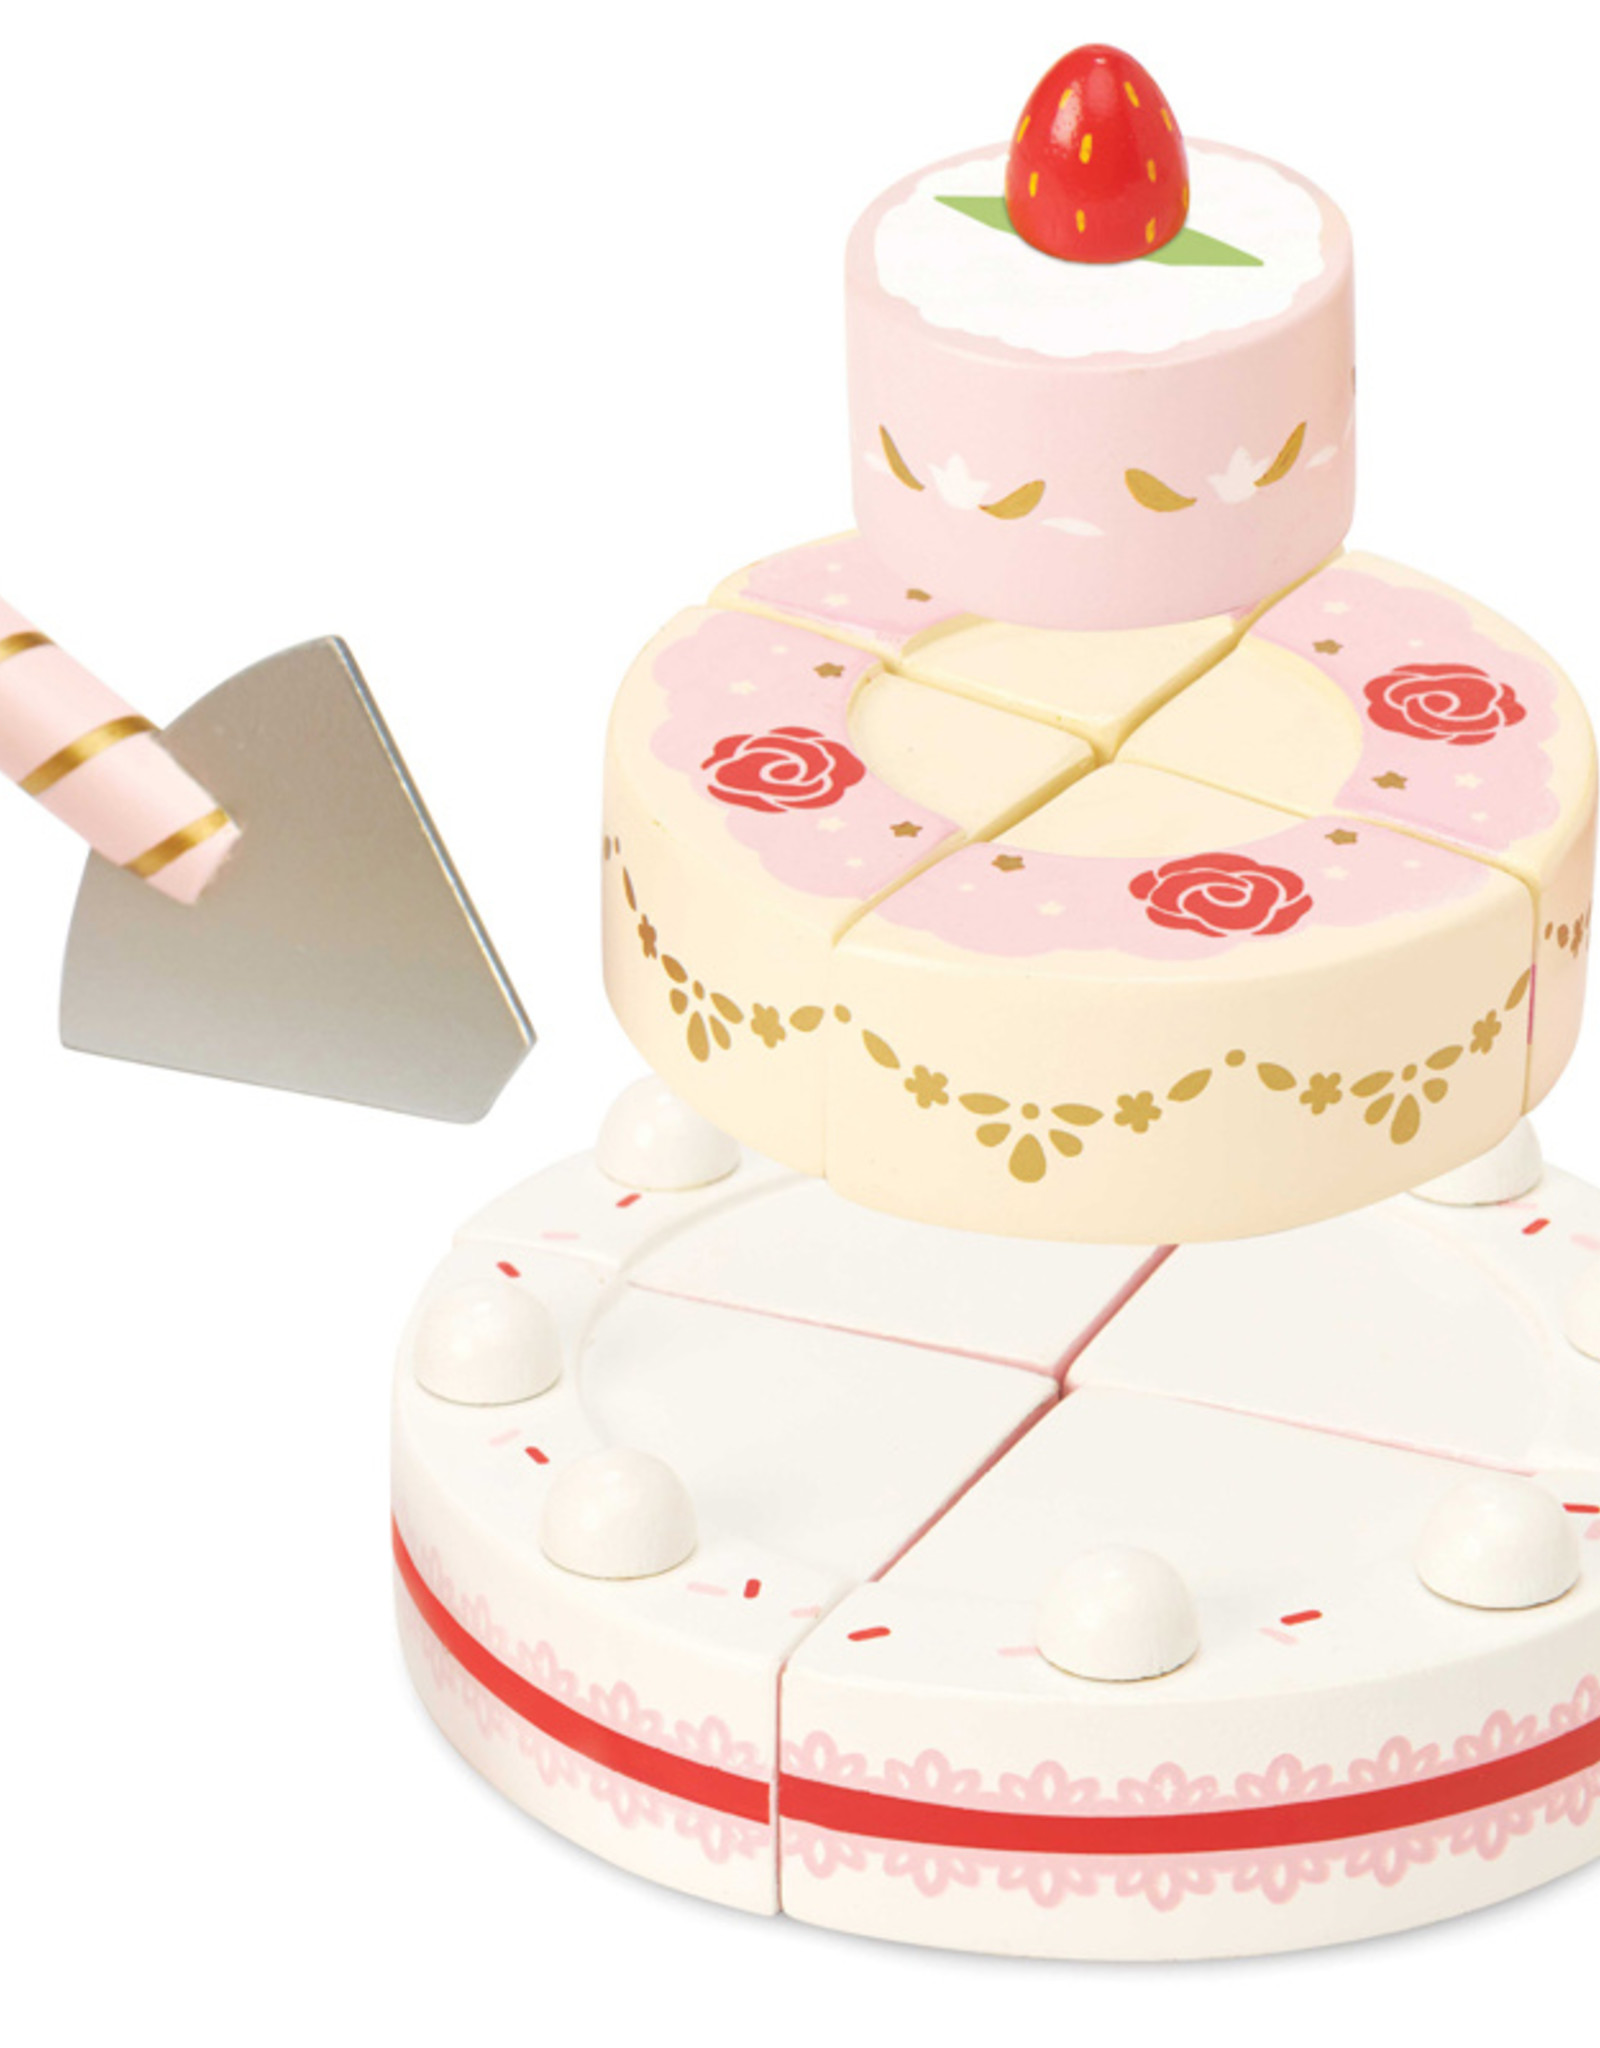 Le Toy Van Le Toy Van - Strawberry Wedding Cake